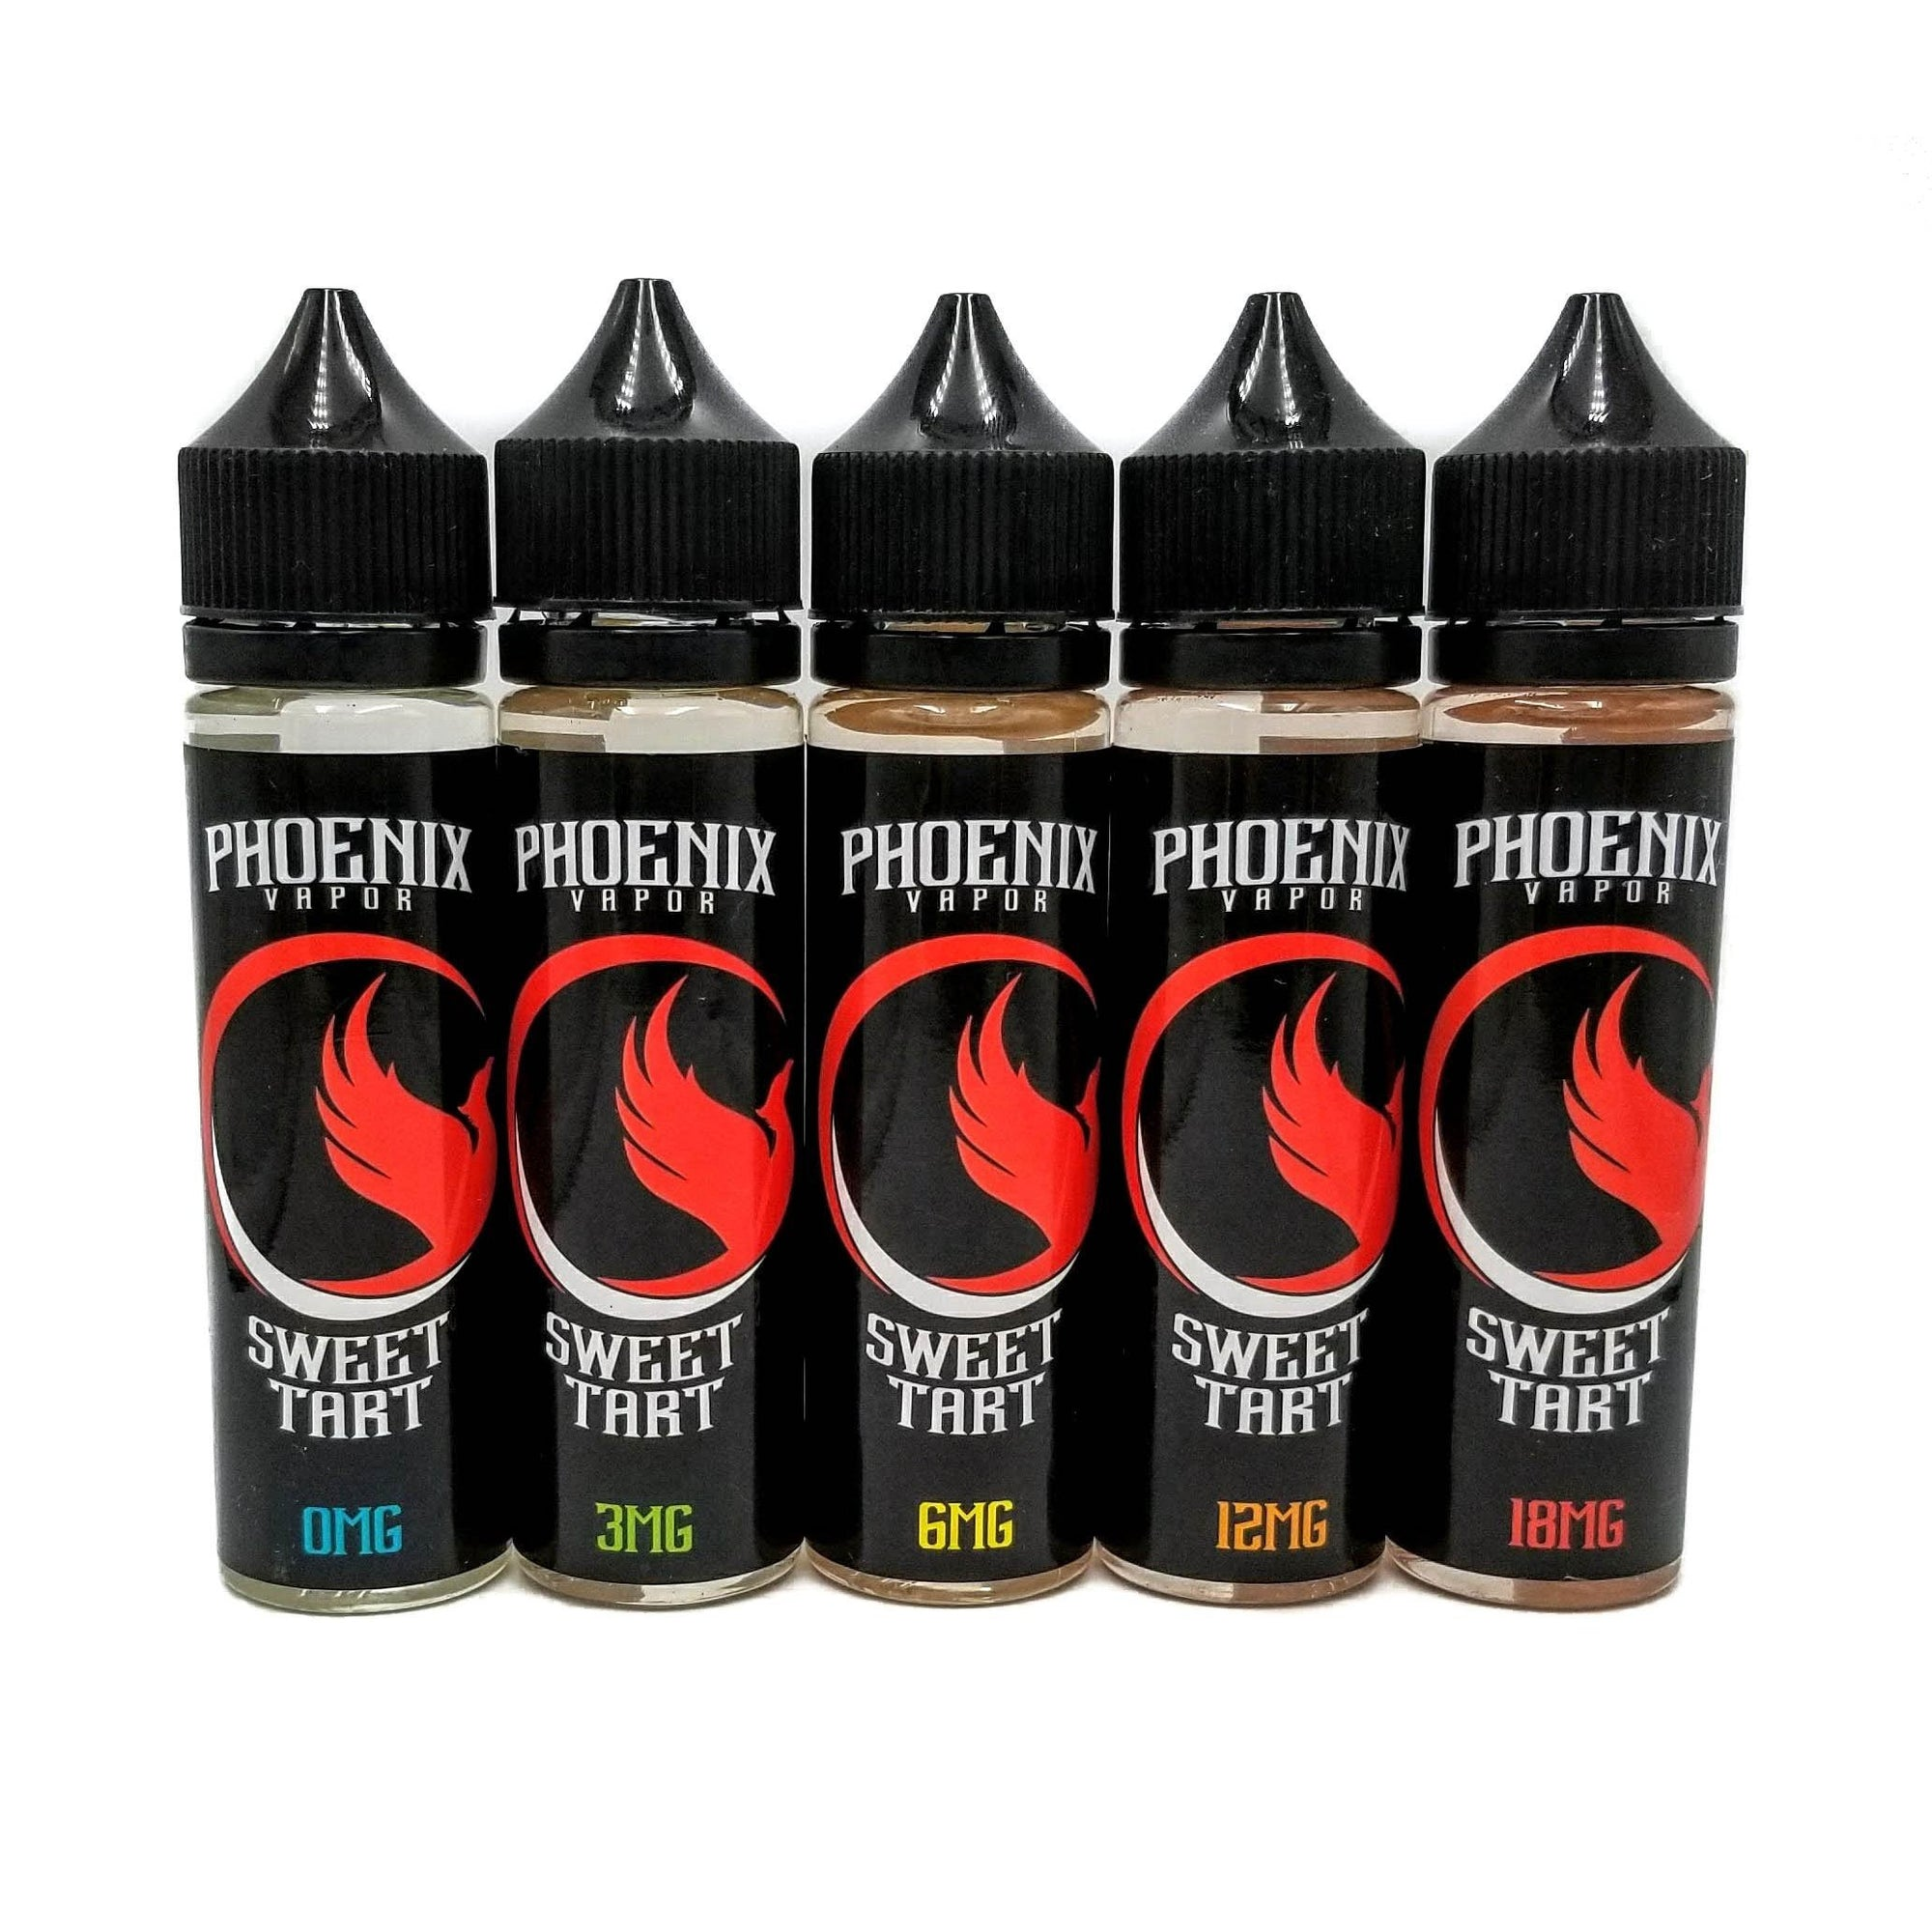 Sweet Tart by Phoenix Vapor